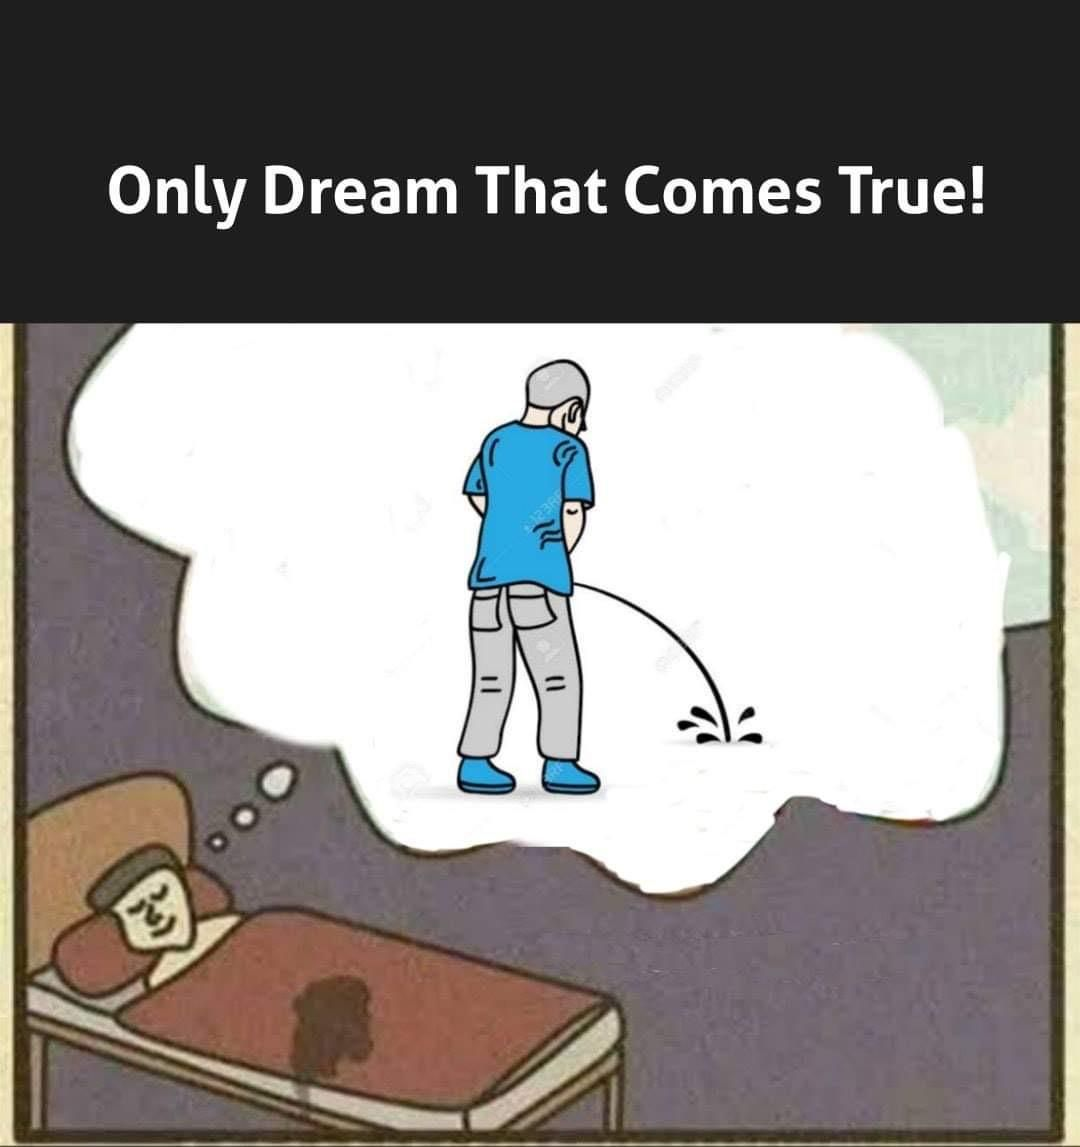 The only dream that comes true!